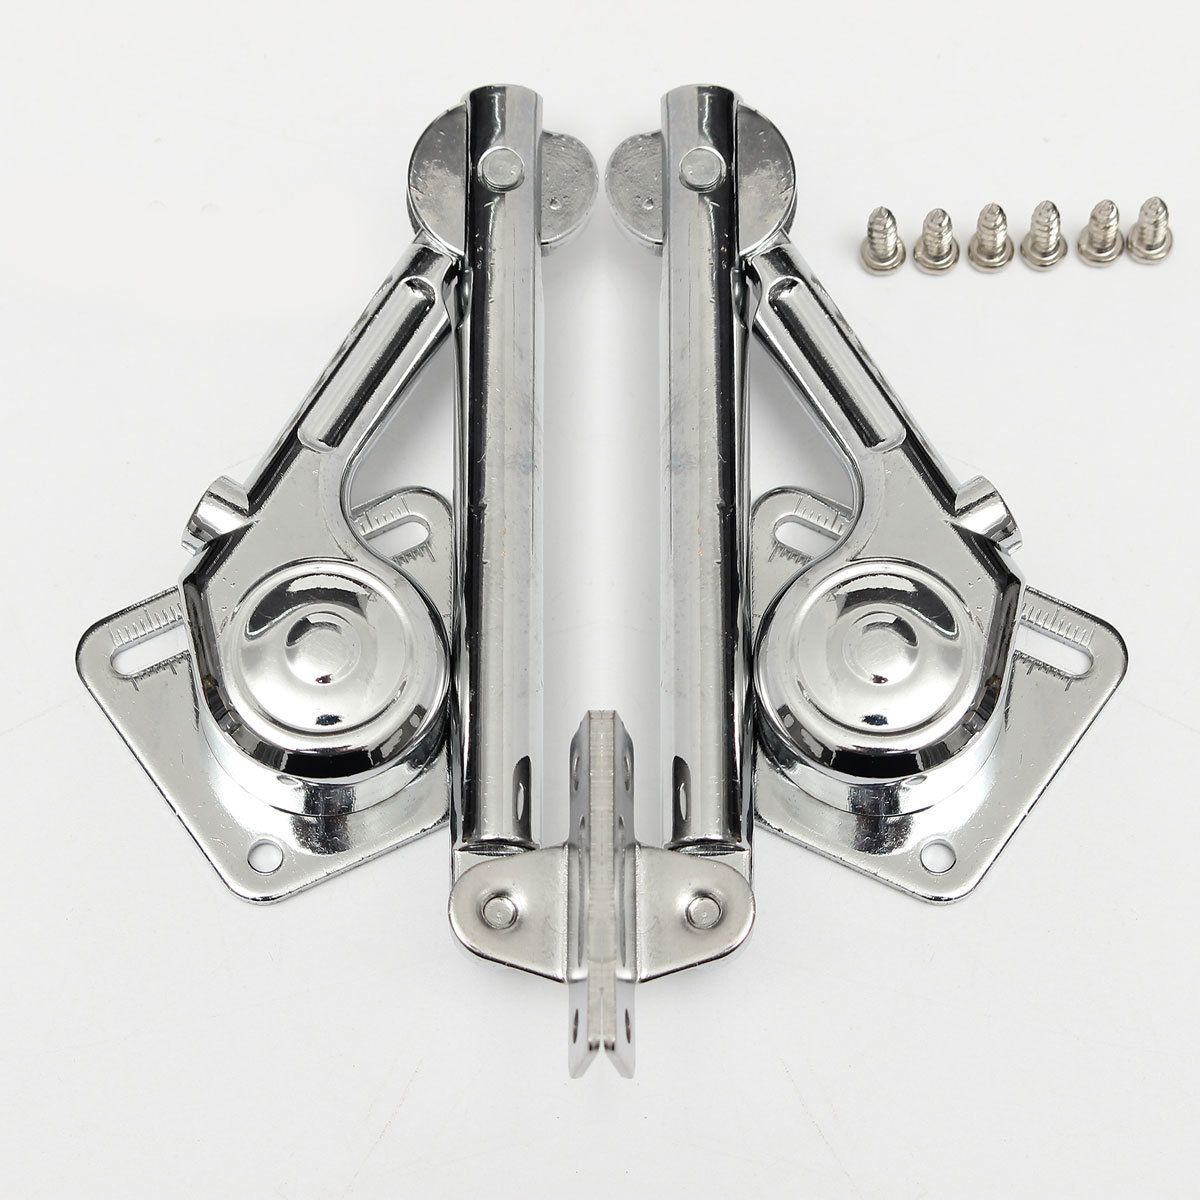 2 pcs Lift Up and Down Lid Support Door Stays for kitchen Cupboard ...